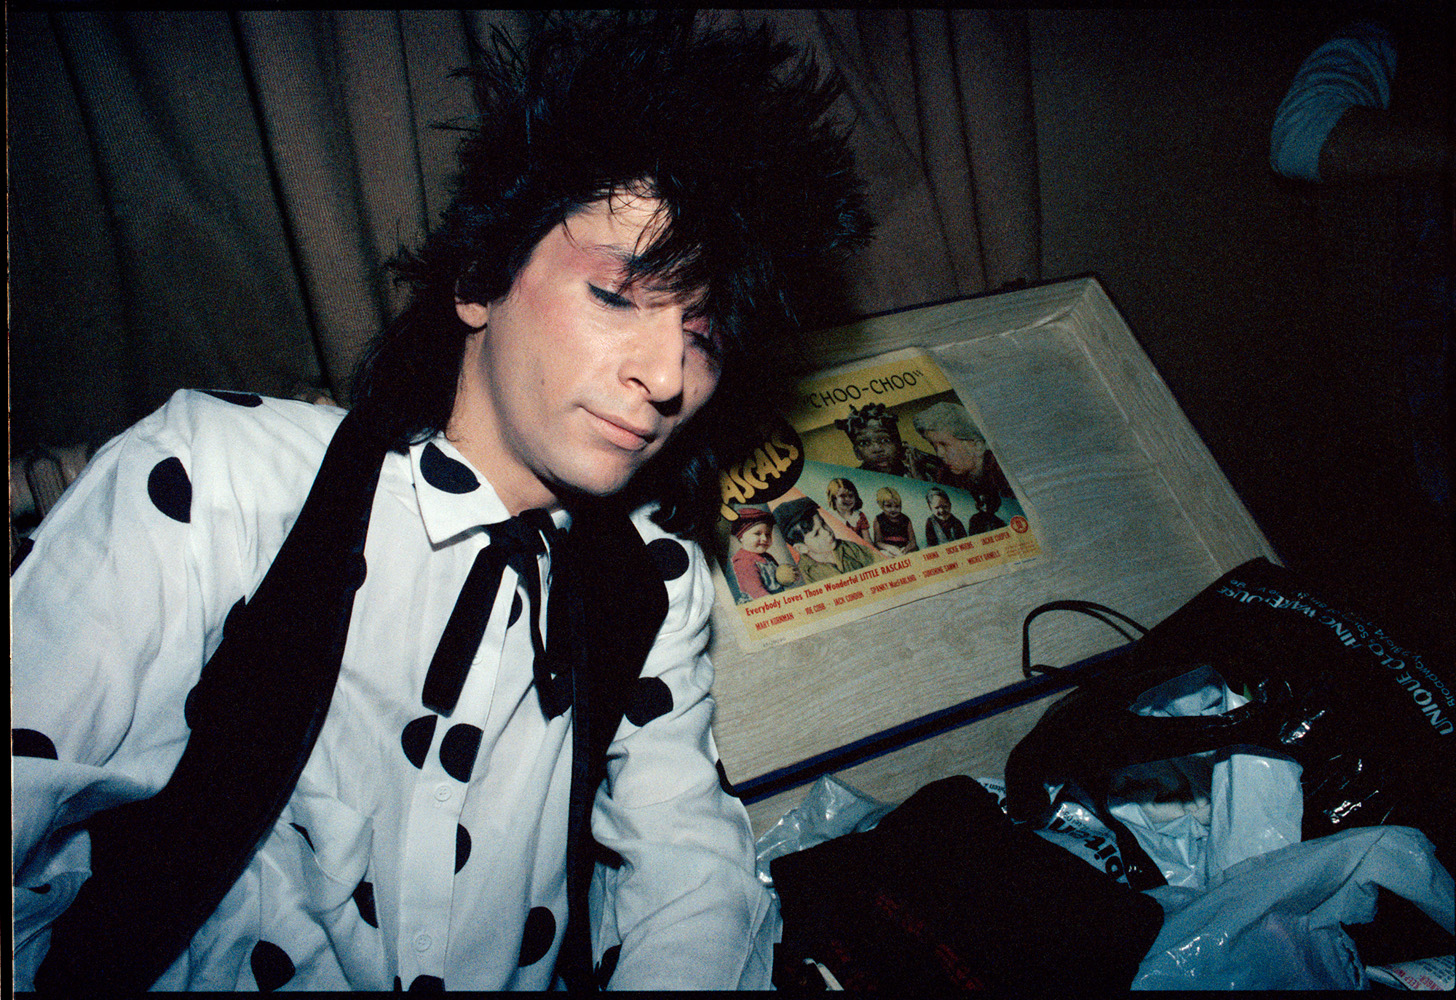 Johnny_Thunders_lobby_card_#4_shot_3_Lucas.jpg